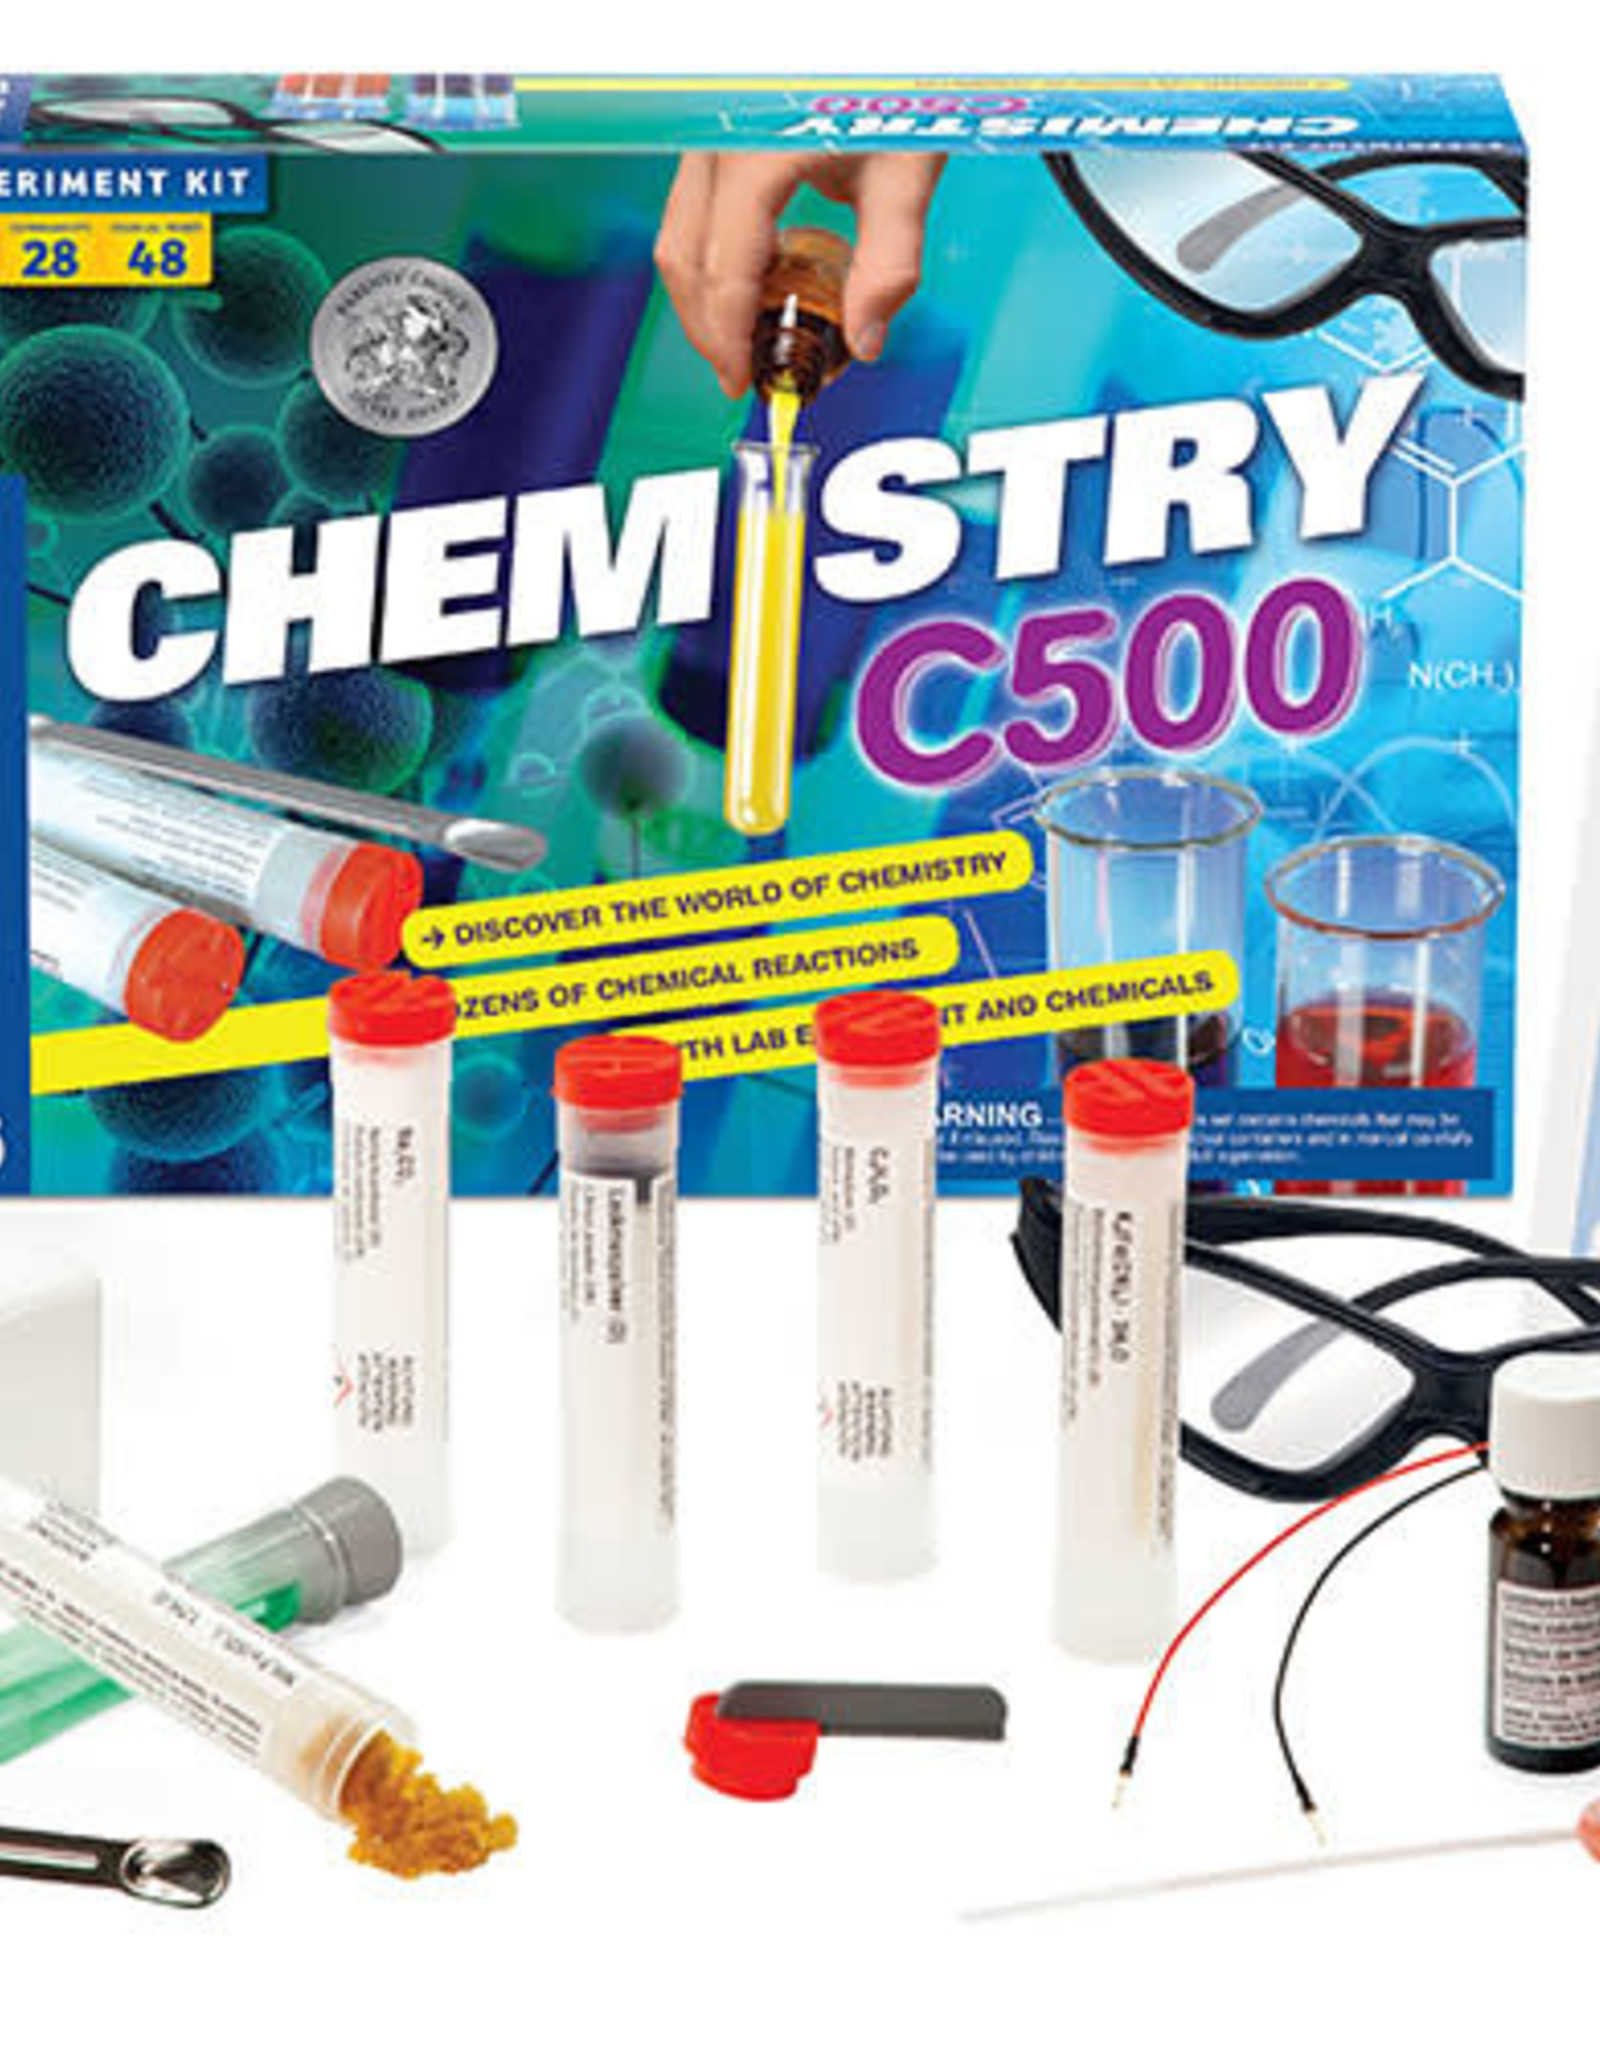 STEM EXPERIMENT KIT CHEM C500 FOSTER ADOPT